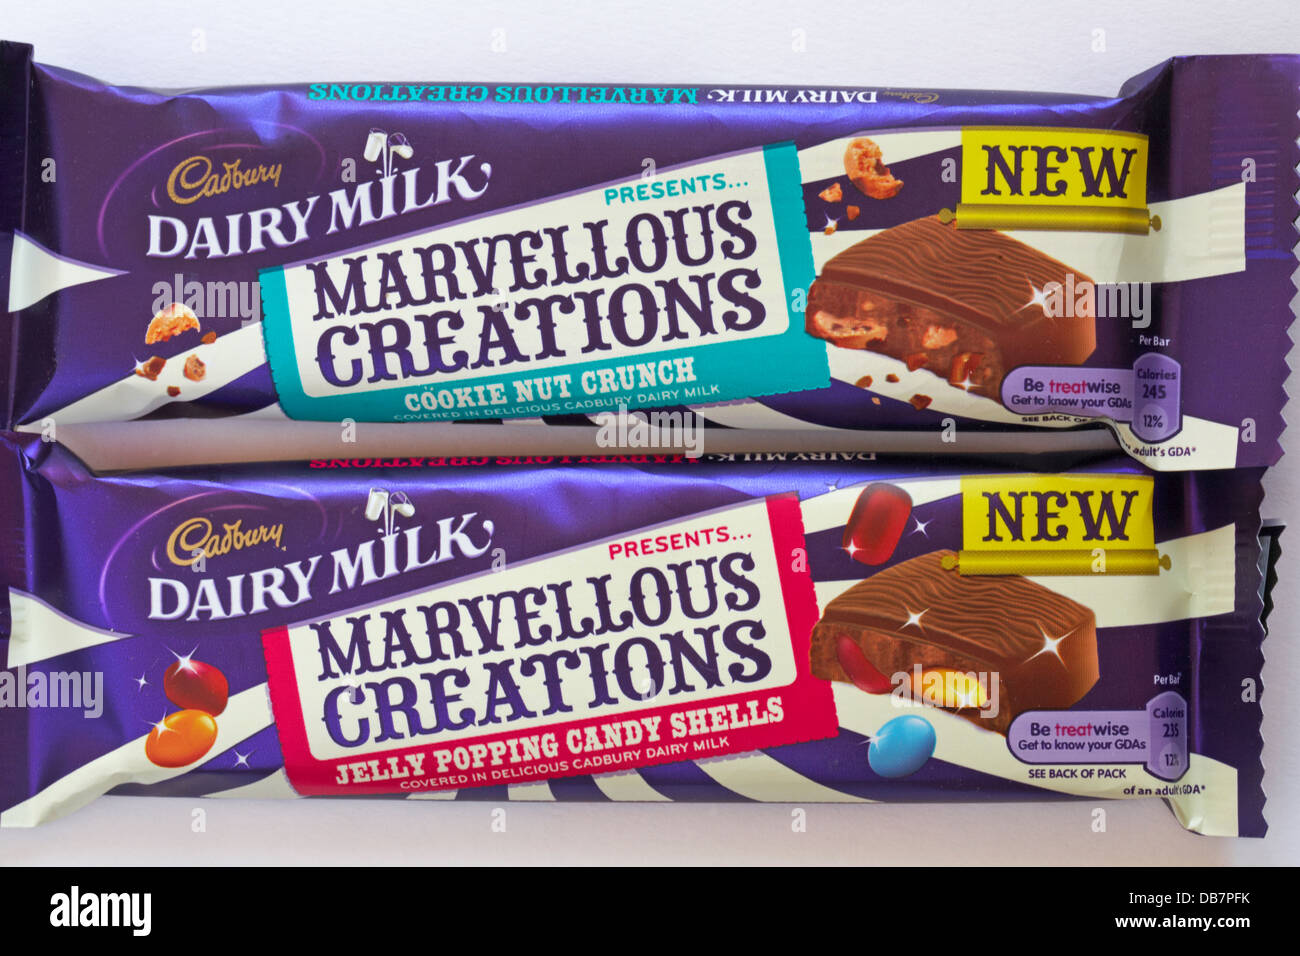 Cadbury Dairy Milk presents Marvellous Creations - cookie nut crunch and jelly popping candy shells chocolate bars - Stock Image